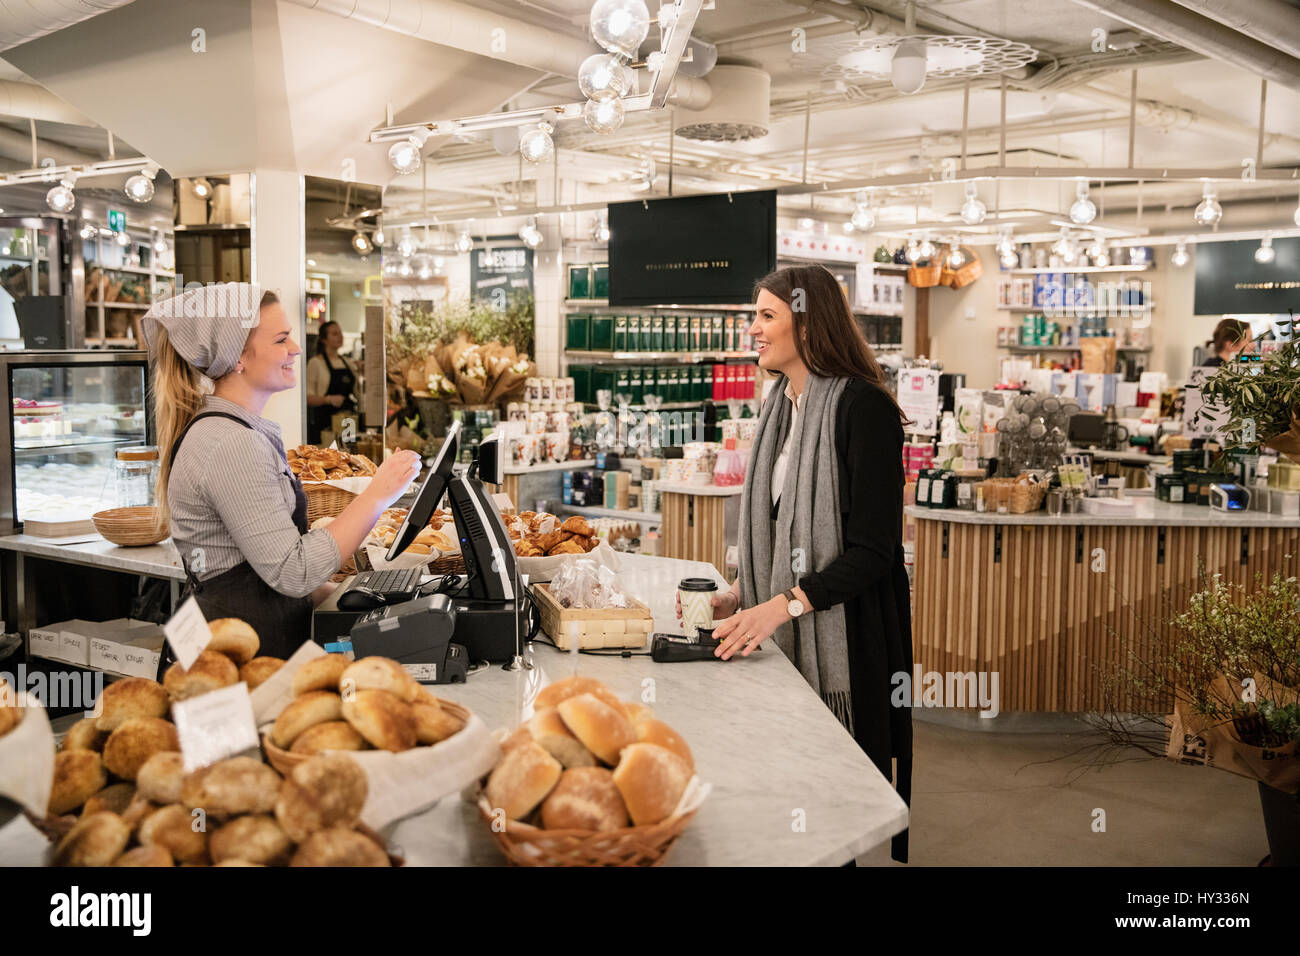 Sweden, Woman shopping in bakery - Stock Image